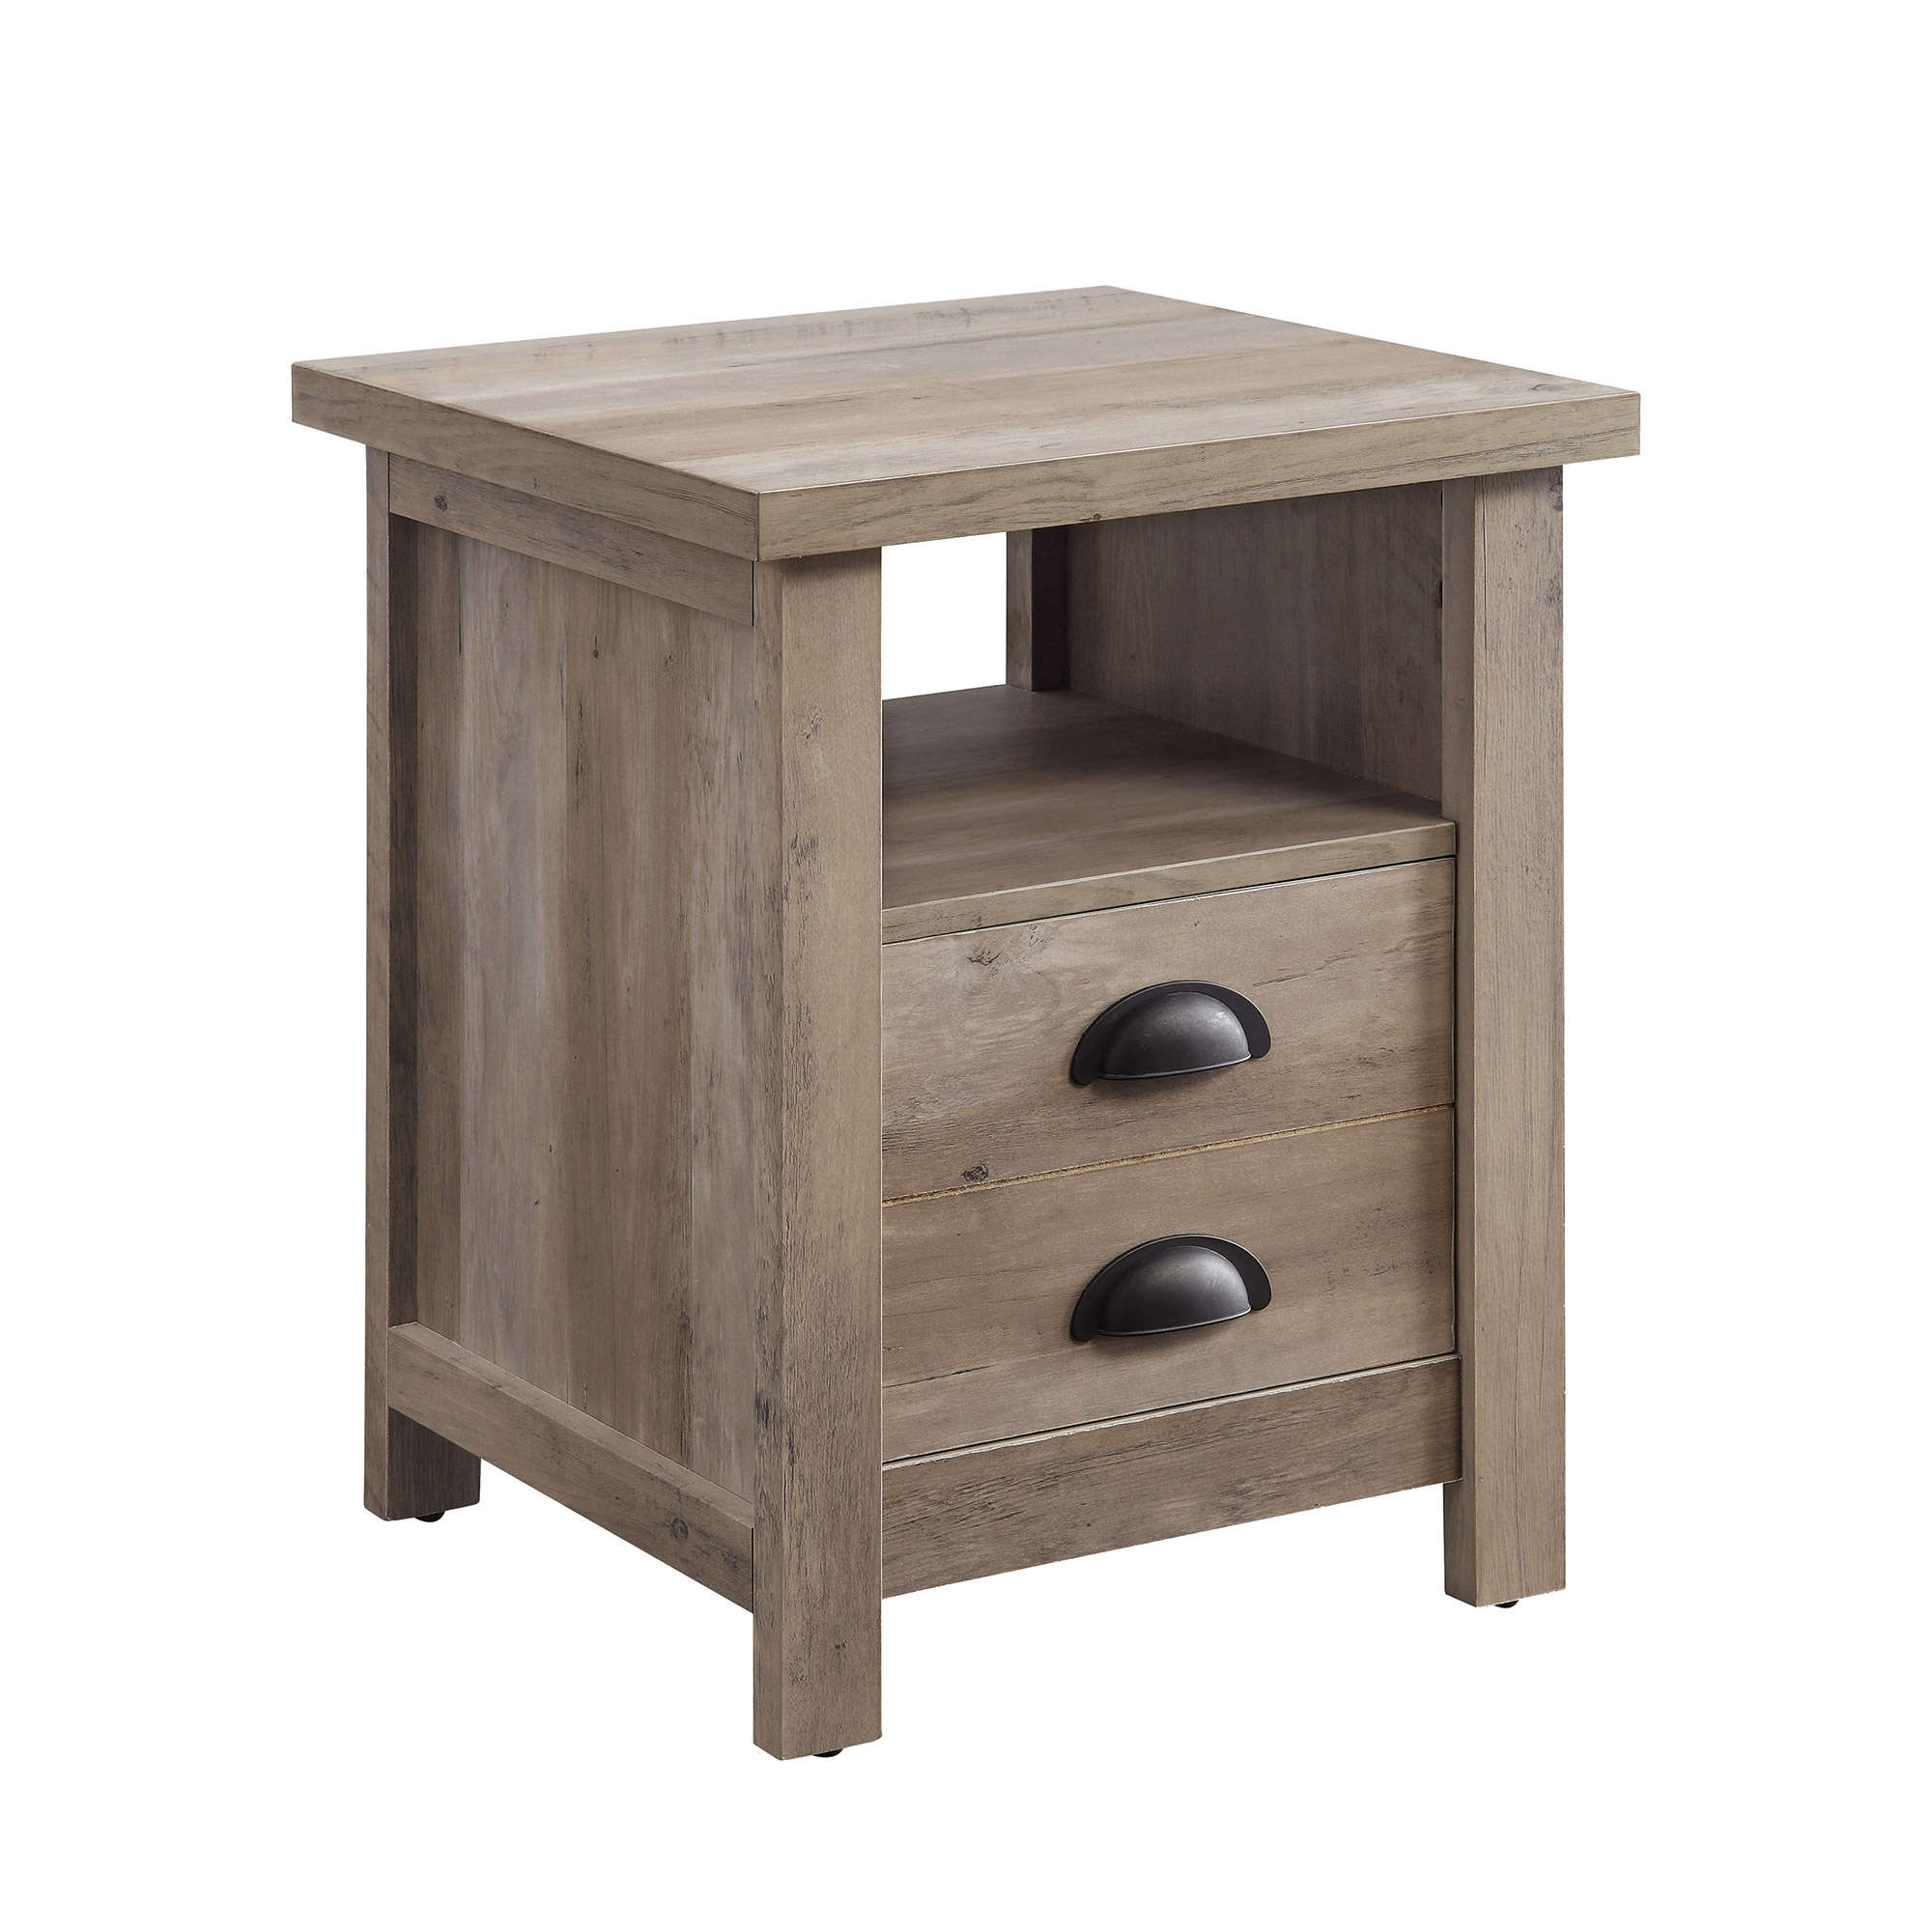 better homes and gardens granary modern farmhouse end table accent multiple finishes antique coffee legs nautical dining room chandelier outdoor recliner ikea vanity lights